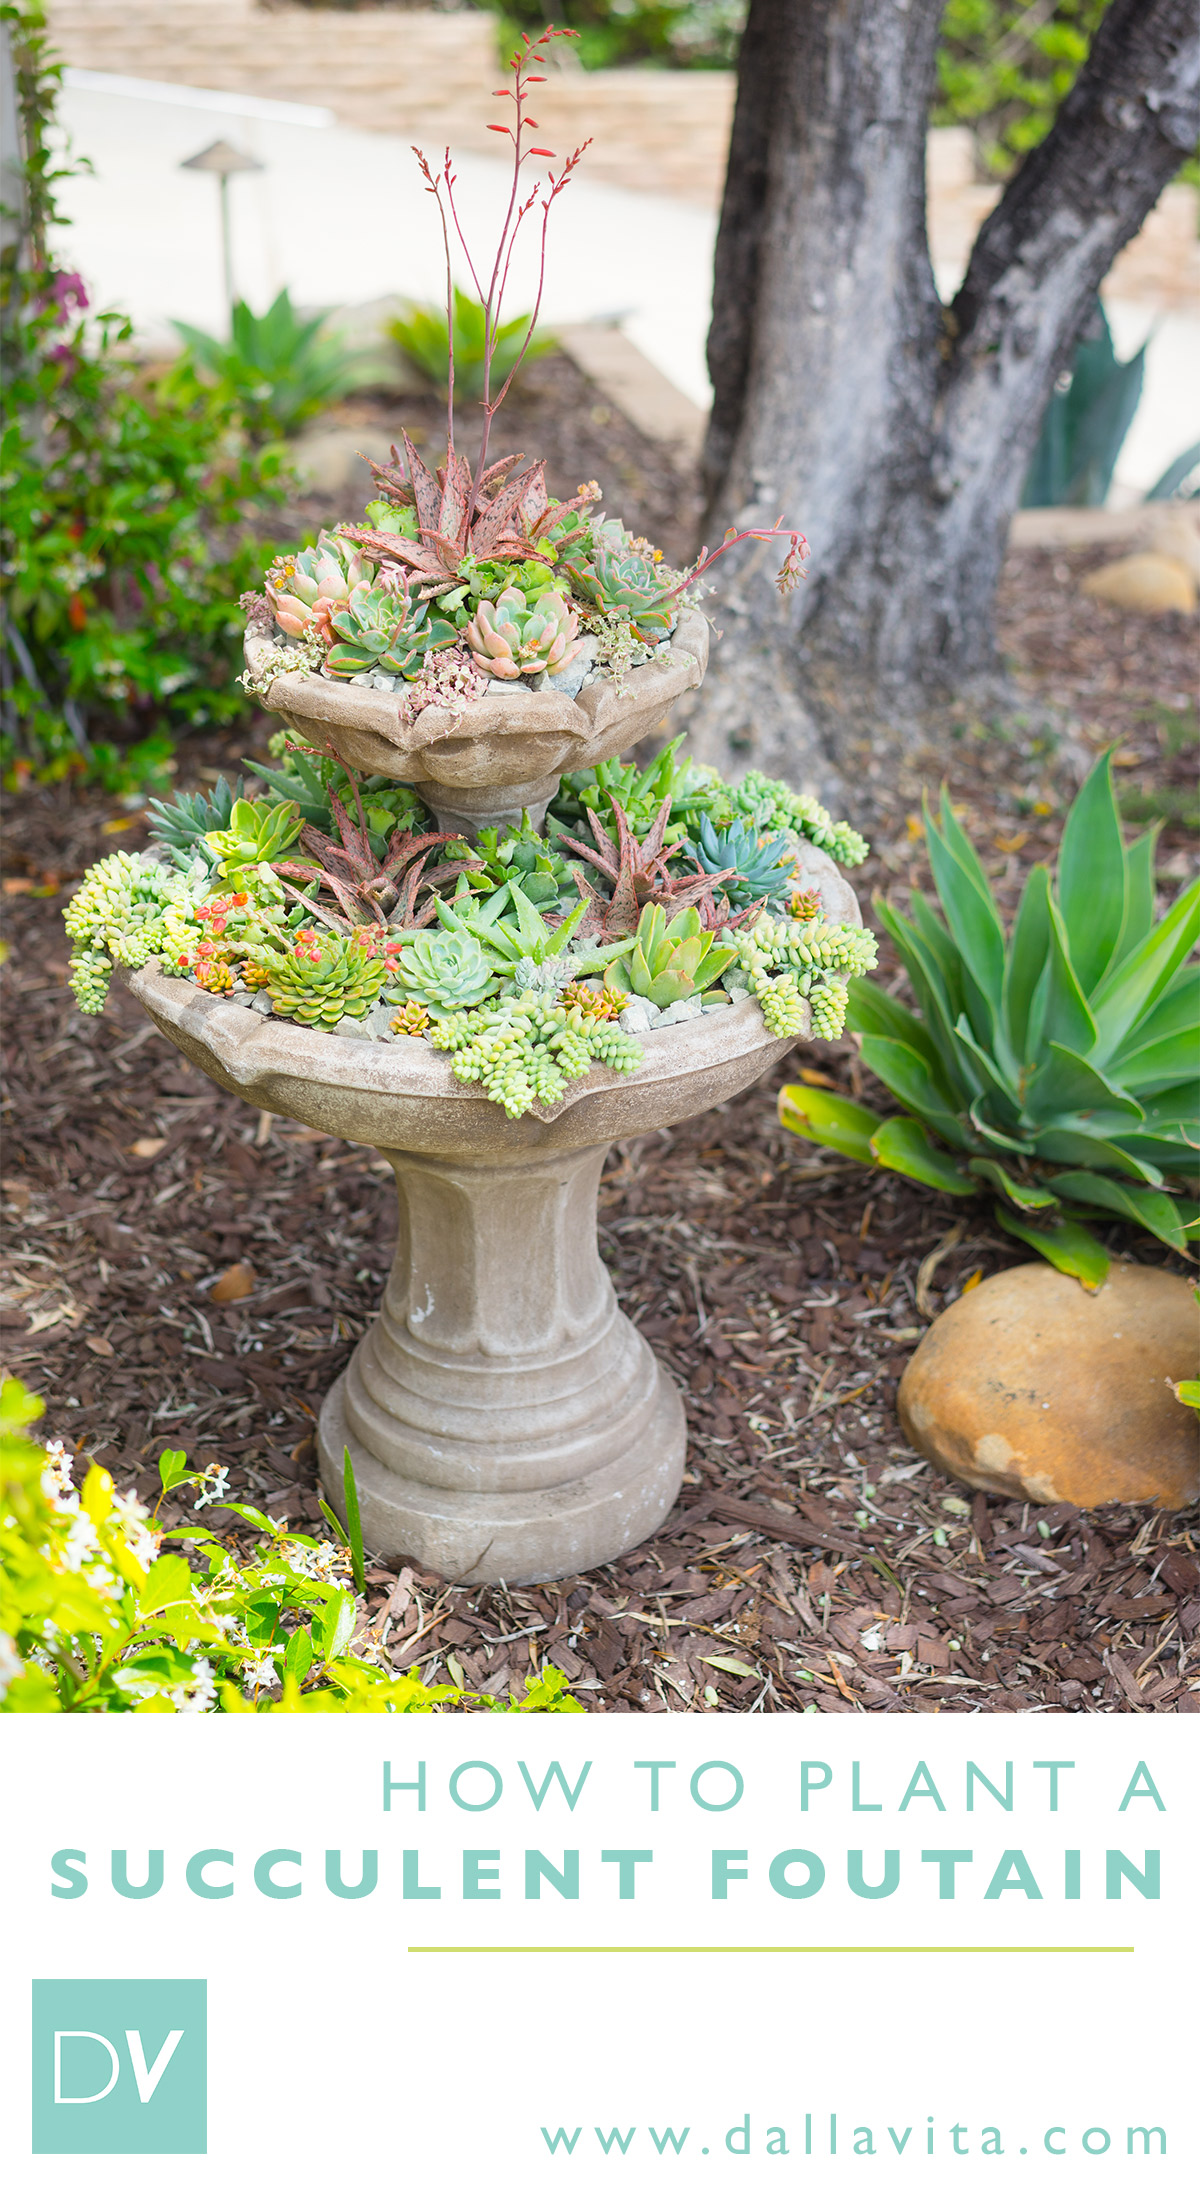 How to Plant a Succulent Fountain - Dalla Vita